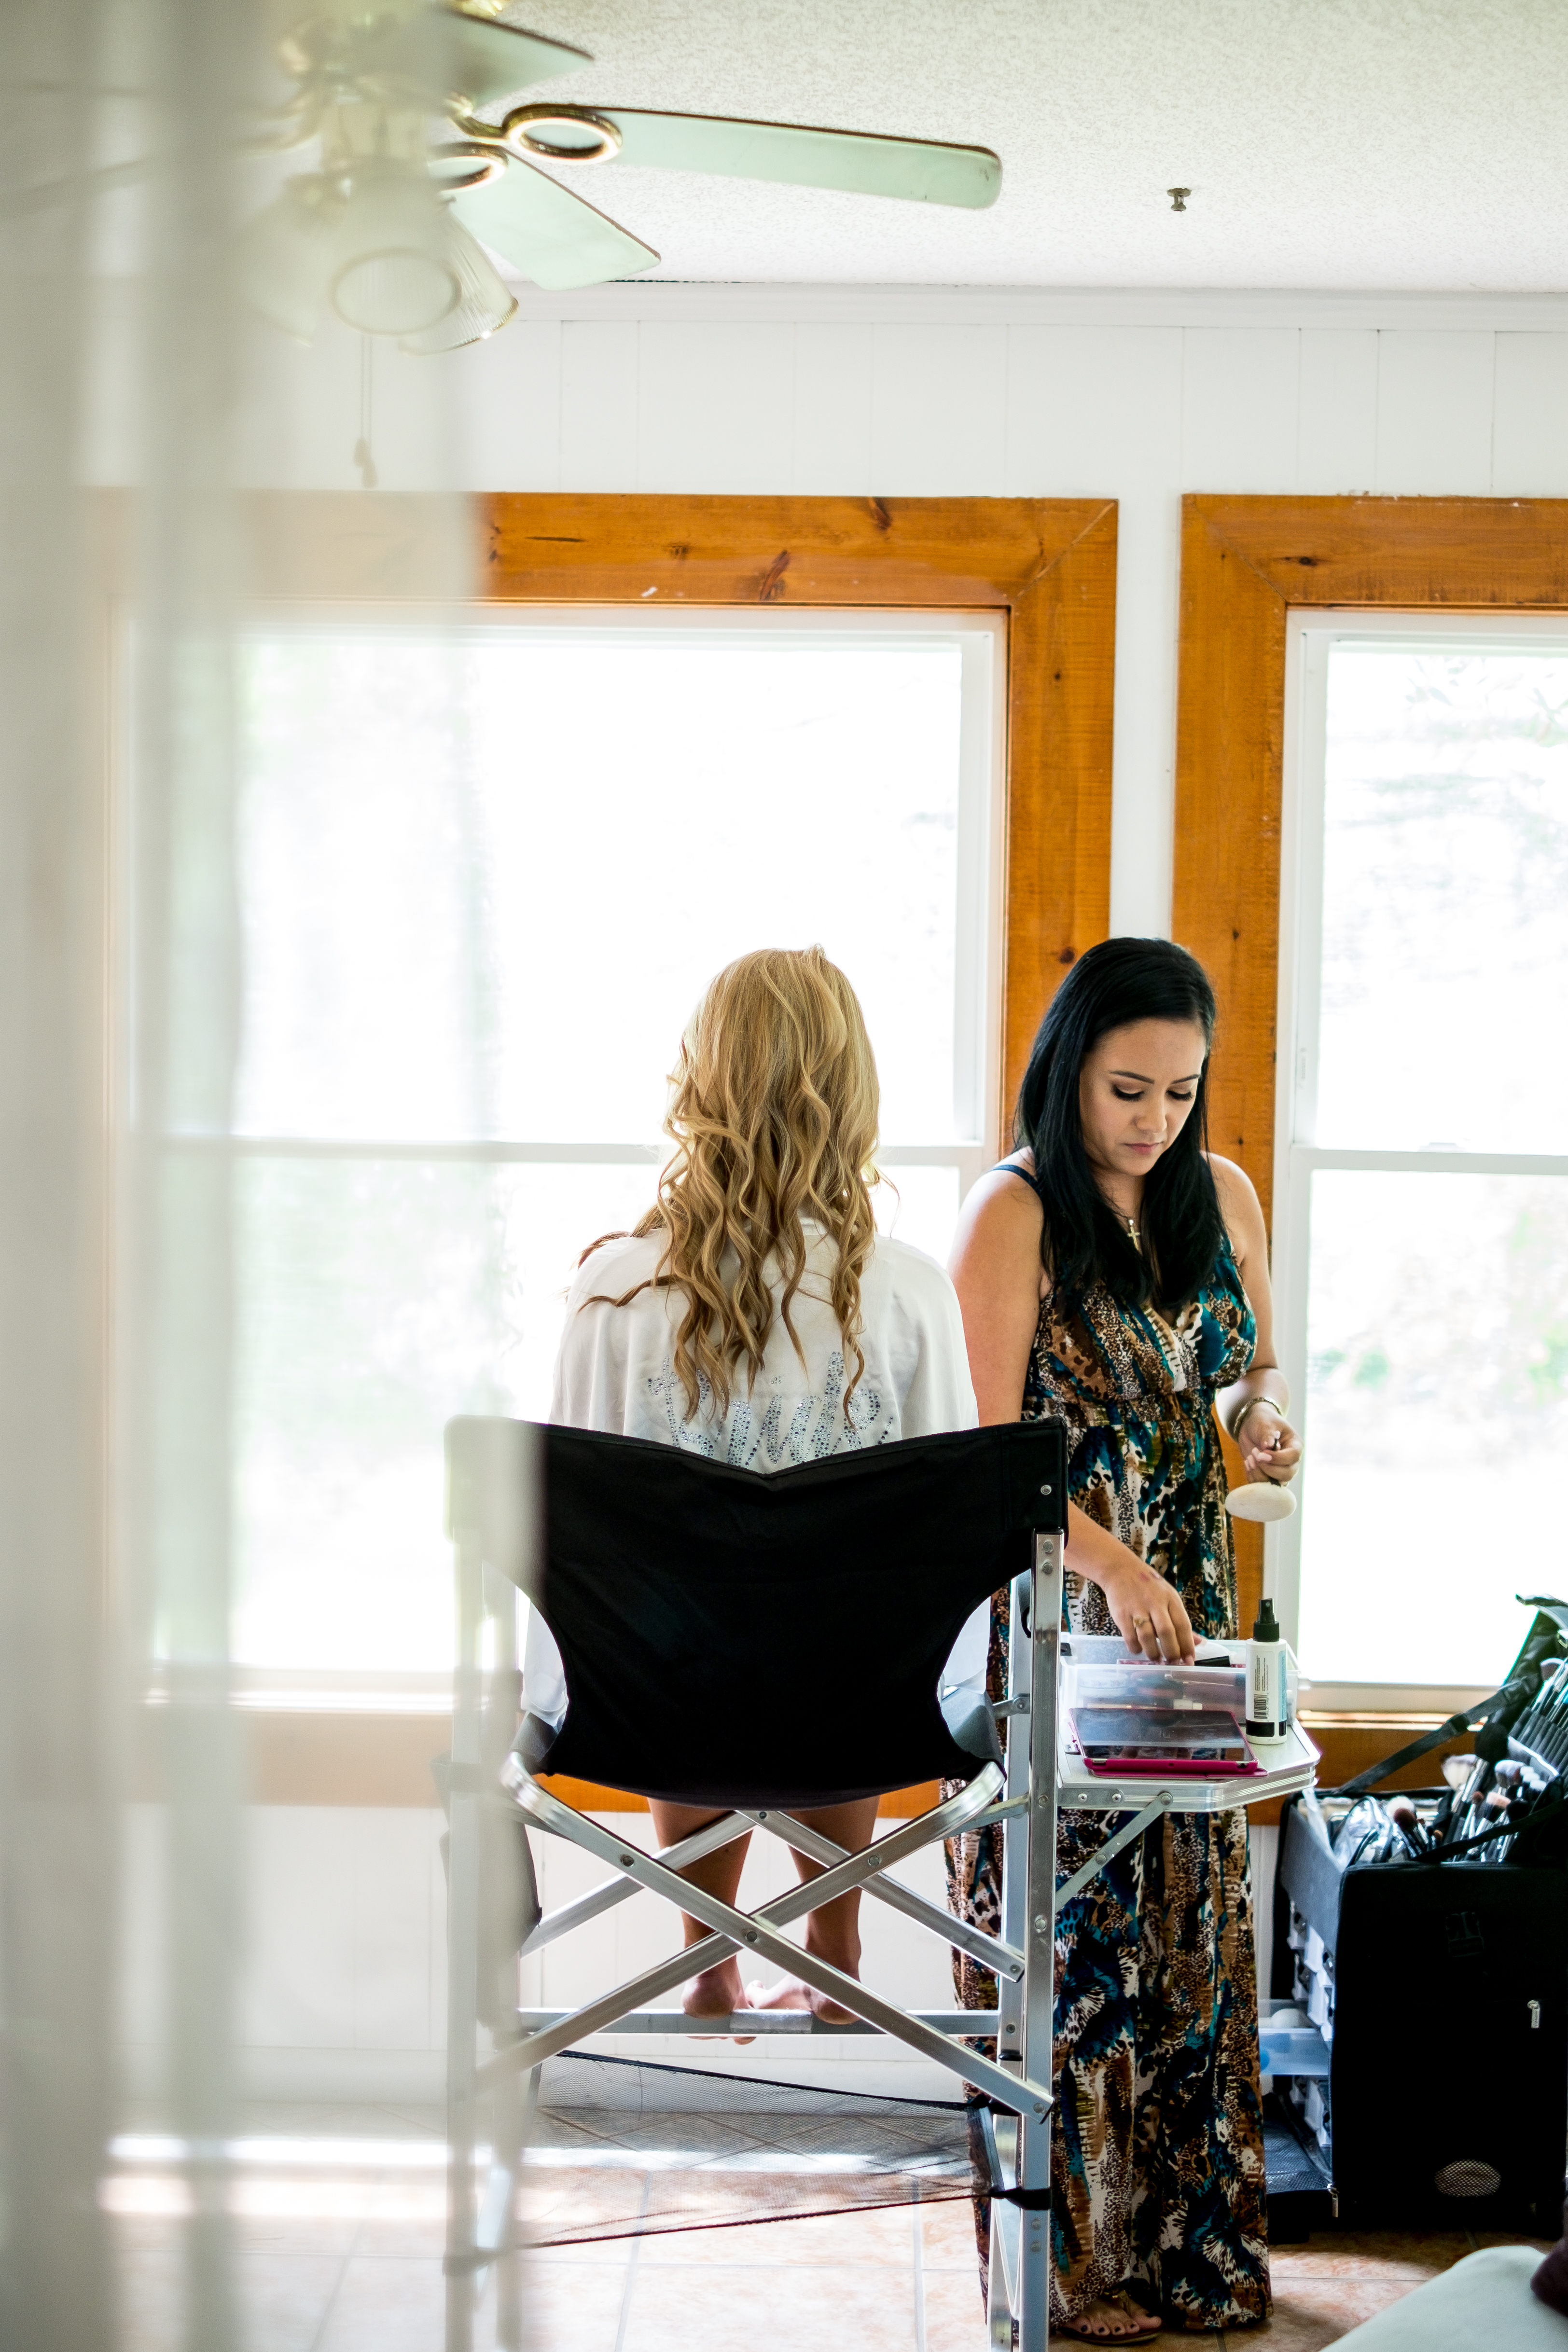 A photo of a bride sitting in her chair, as a makeup artist prepares her for her wedding day. Photo taken by Pait Photography, at a wedding at St. James Plantation, in St. James, NC.